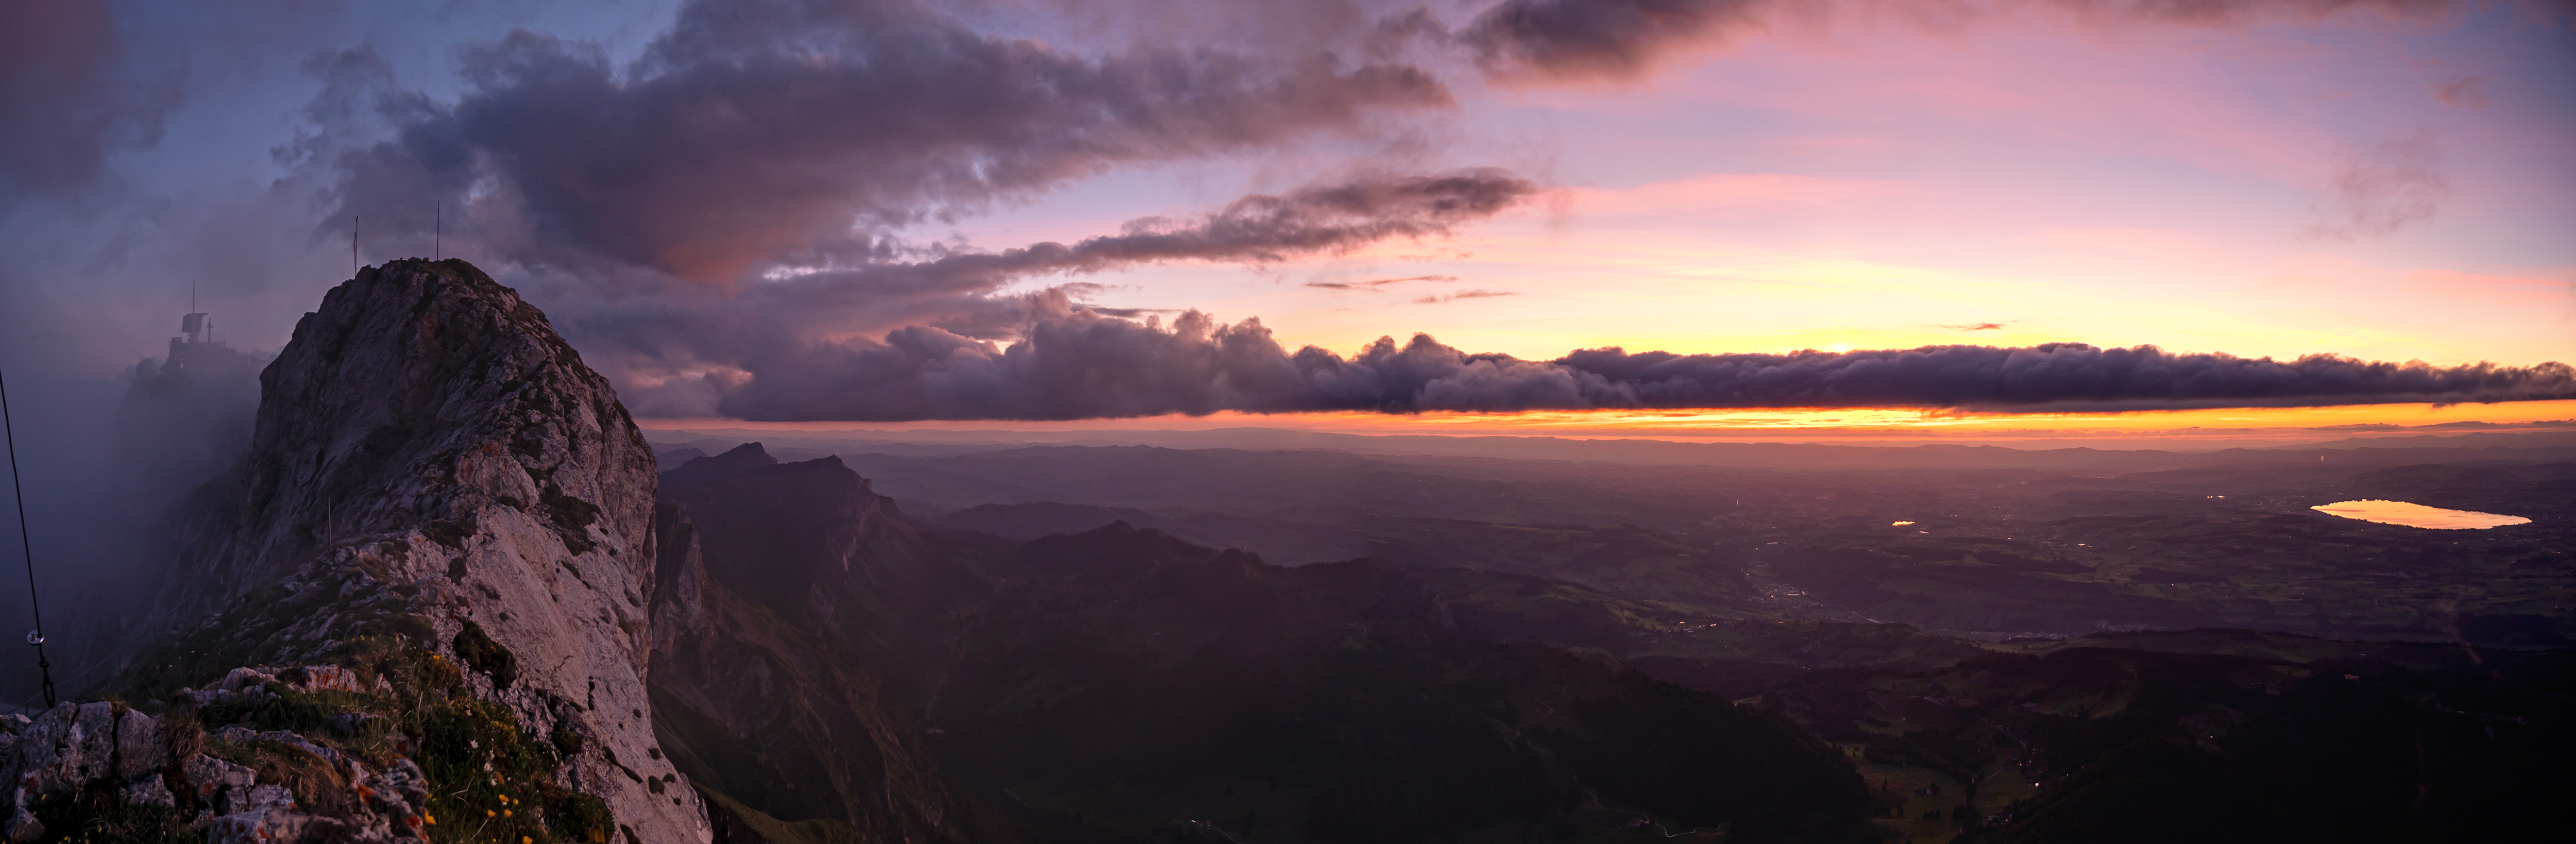 neil_MacCormack_Mount_Pilatus_Switzerlan